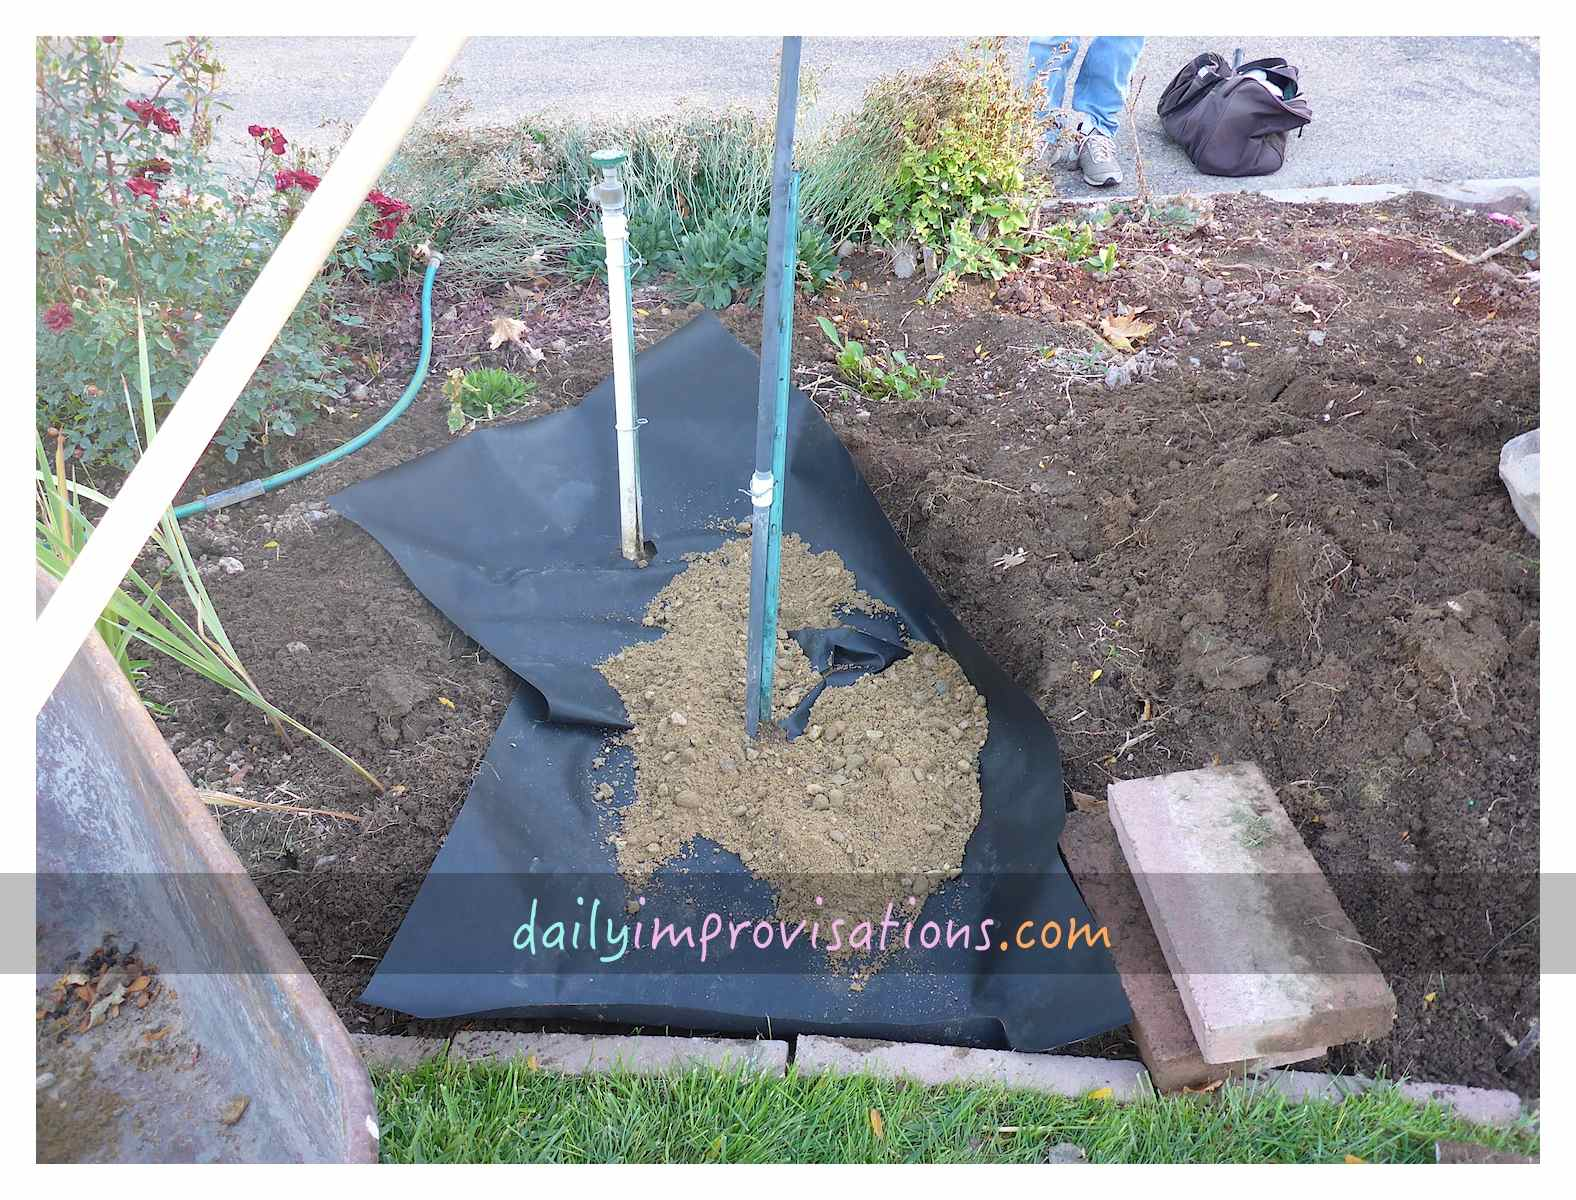 hardscaping for water faucet access in the garden. Black Bedroom Furniture Sets. Home Design Ideas